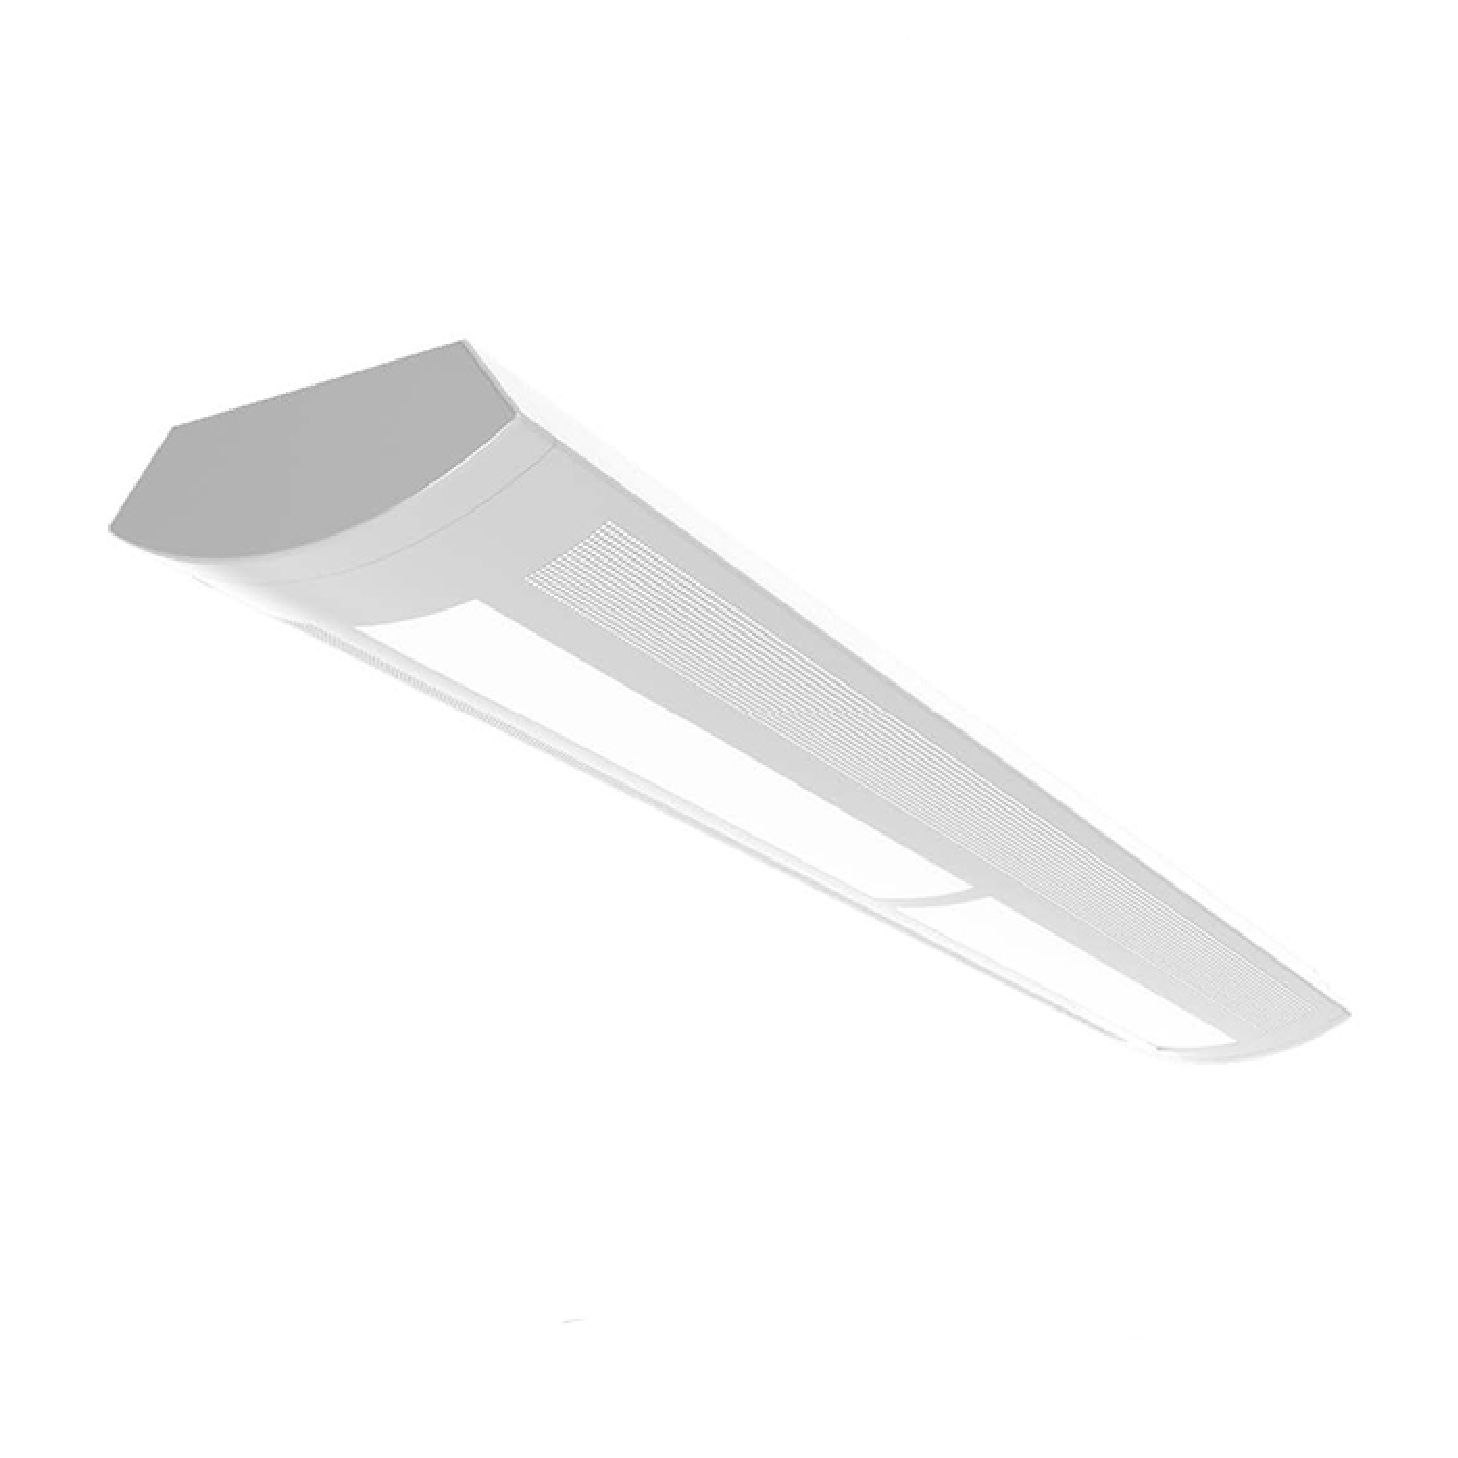 Alcon lighting 10123 architectural suspended linear fluorescent alcon lighting 10123 architectural suspended linear fluorescent direct indirect office lighting fixture t5 or t5ho alconlighting arubaitofo Choice Image